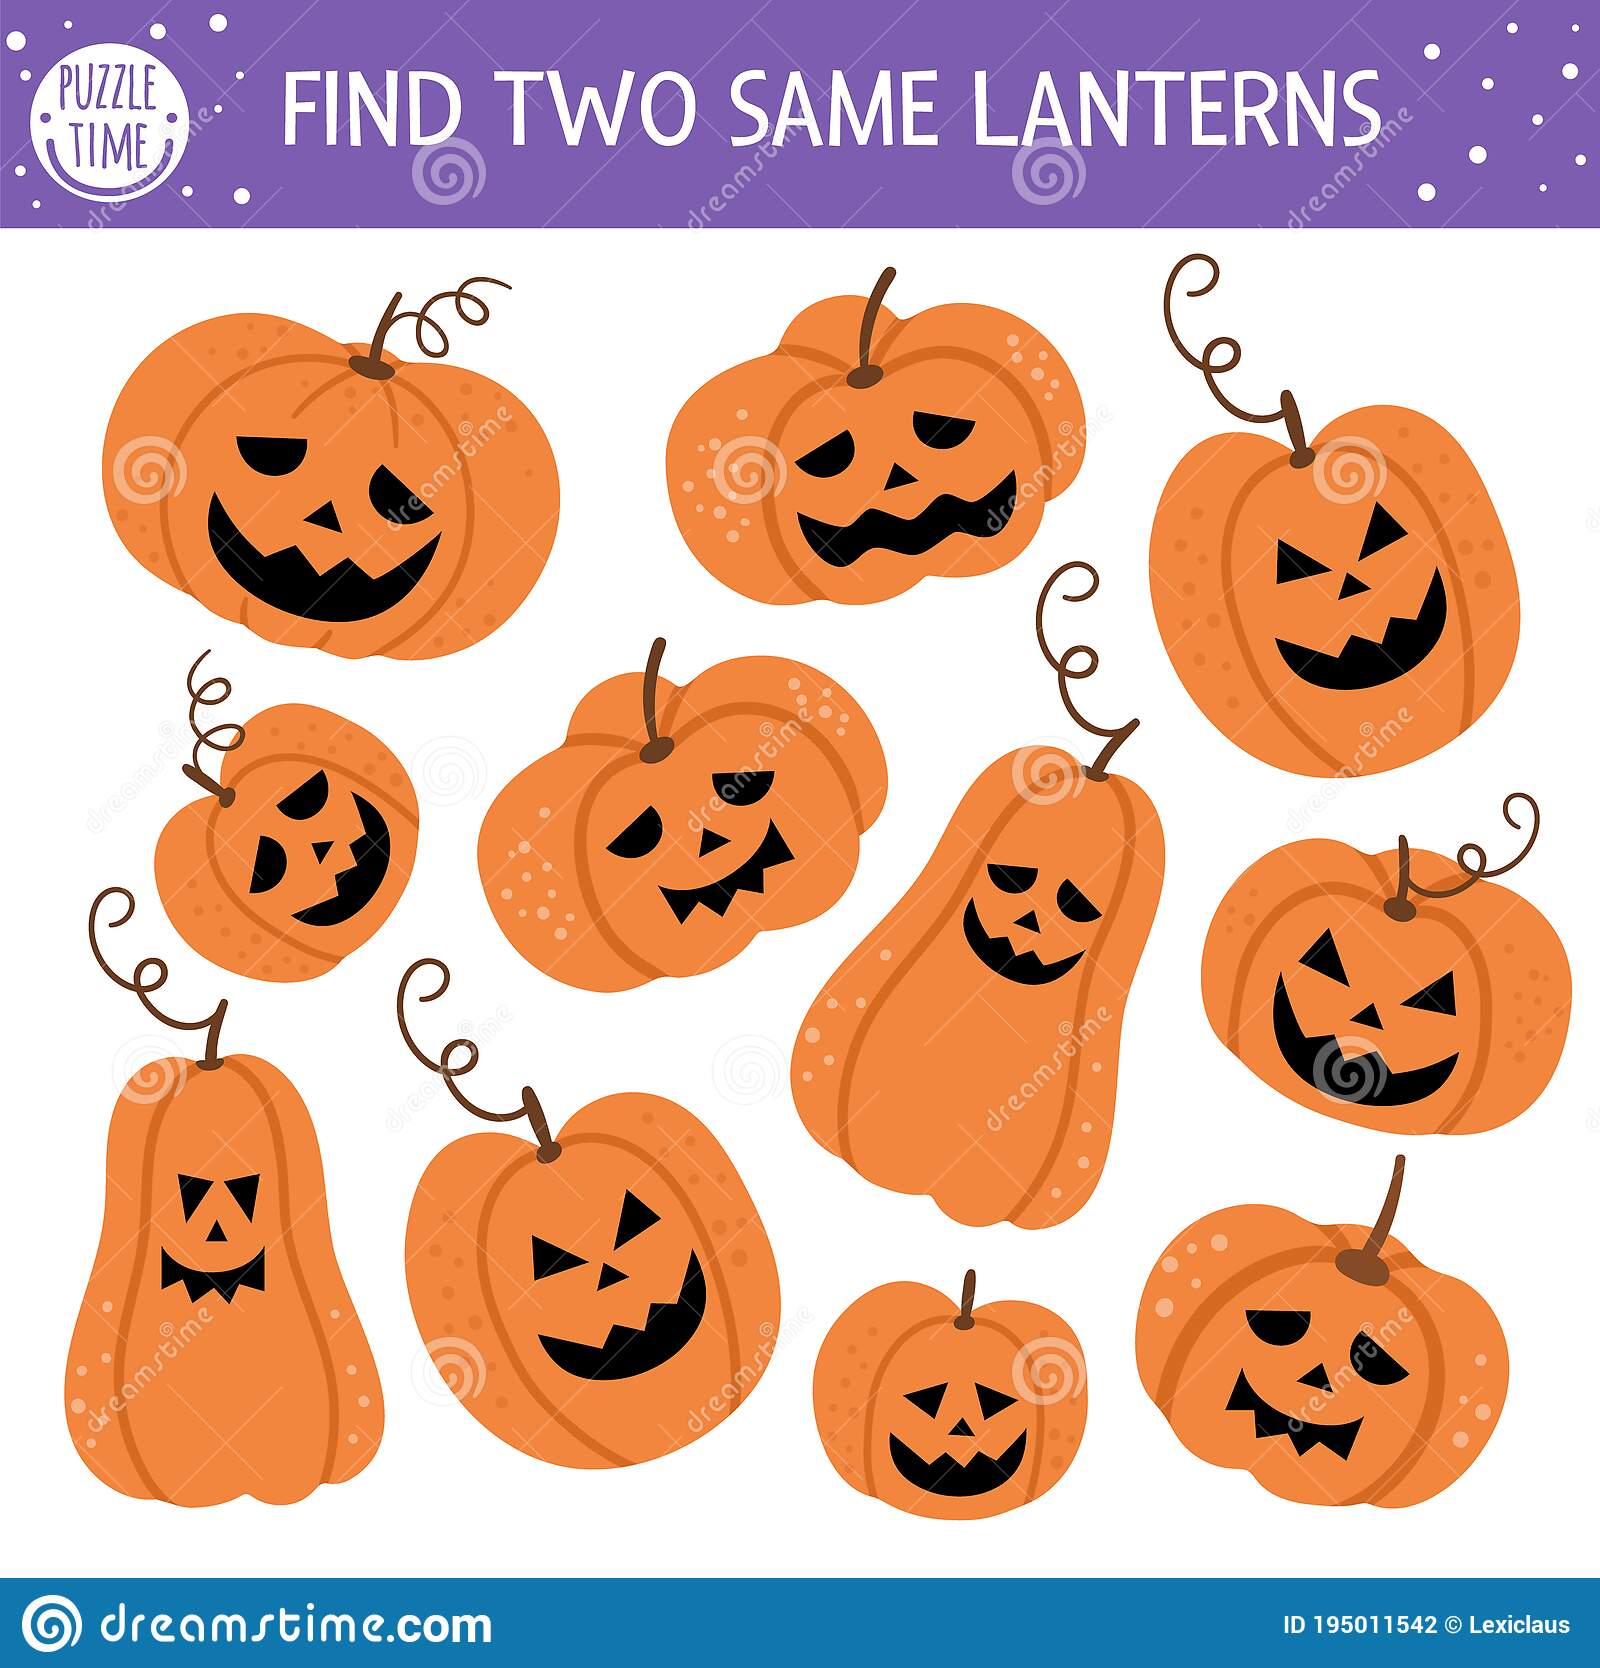 Find Two Same Jack O Lanterns Halloween Matching Activity